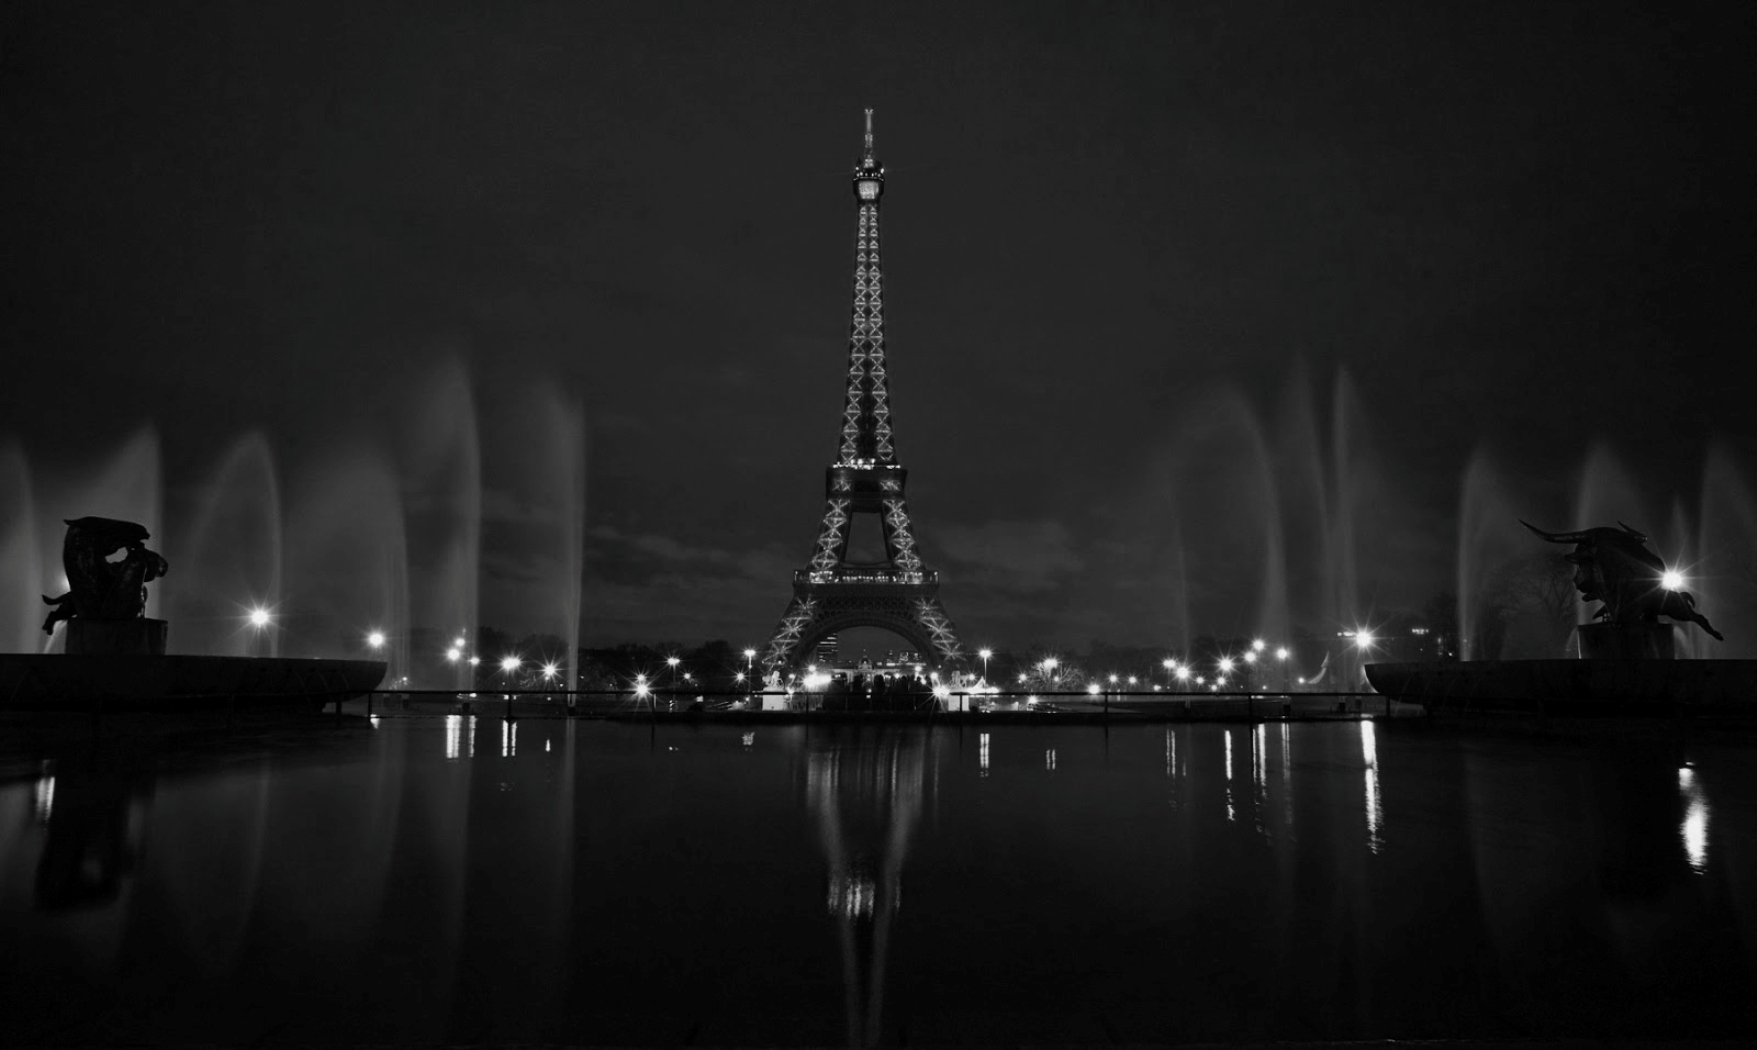 wallpapere hd turnul eiffel (6)[1] (1600x956).jpg